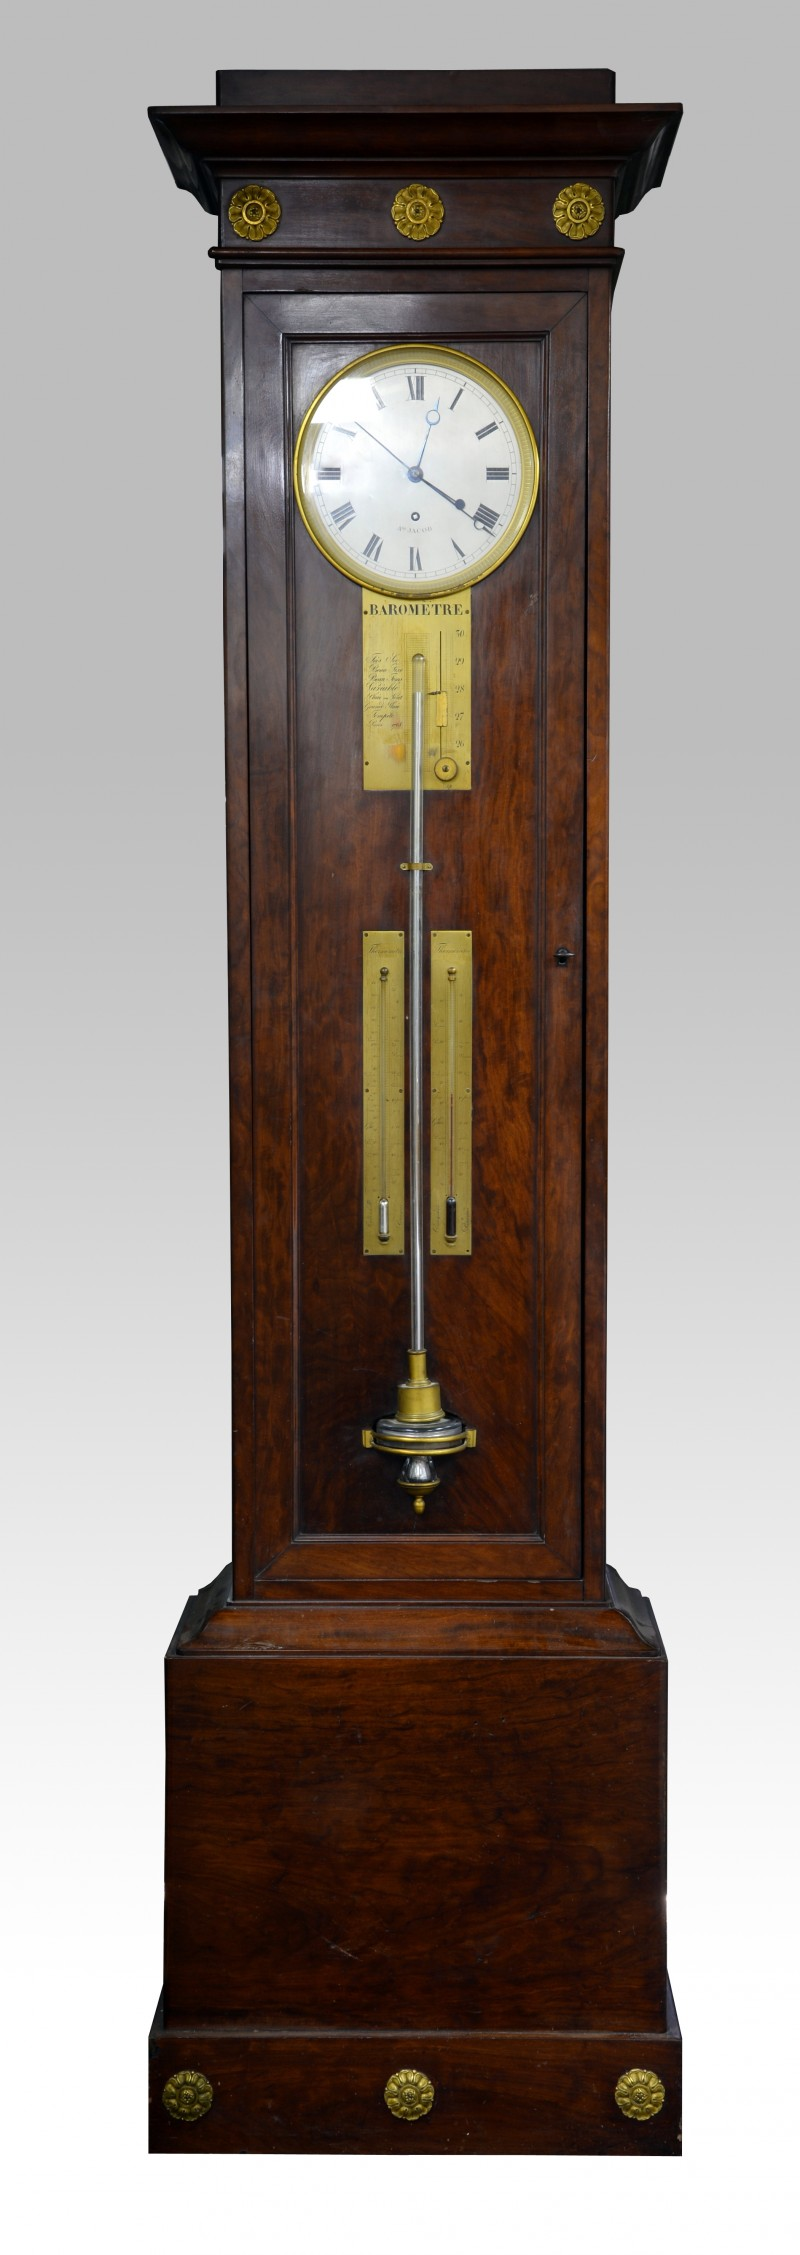 A fine 19th century French mahogany long-case regulator, by Jean-Aimé Jacob, had a final price of £9,398